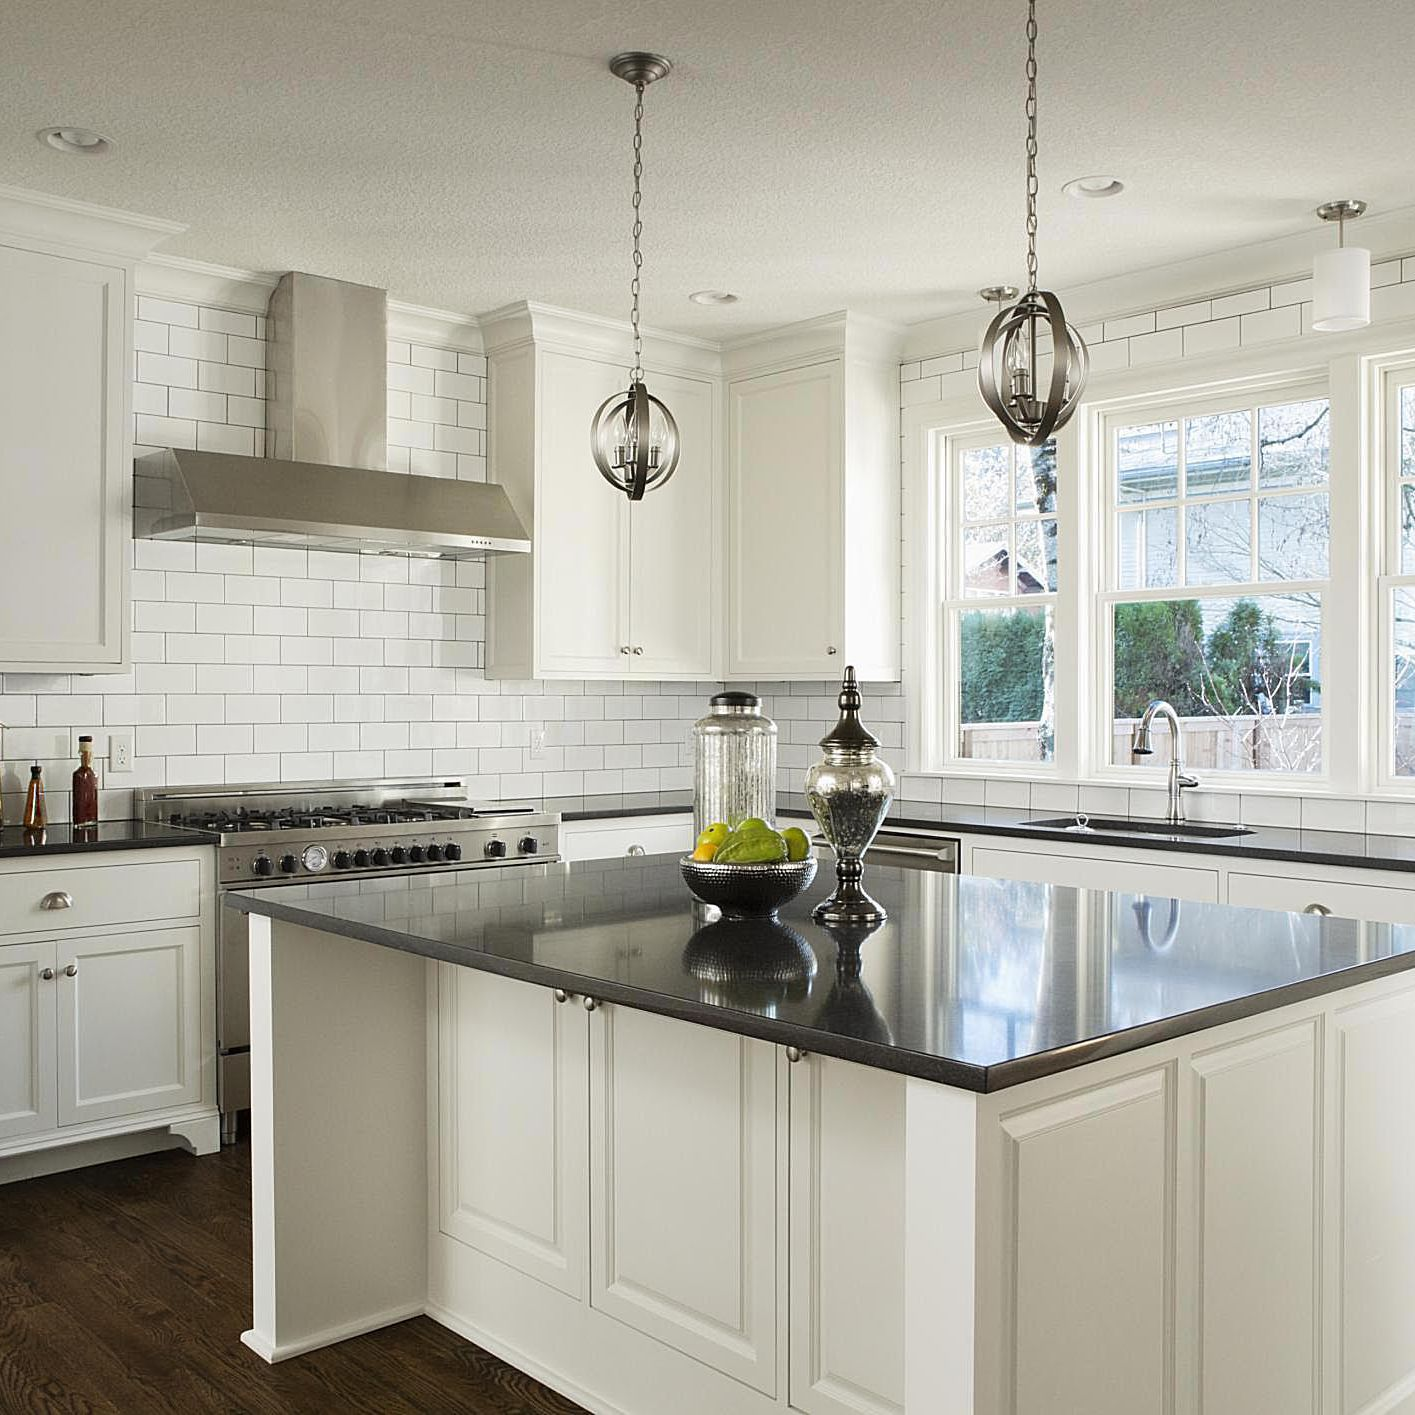 9 Sources for RTA Ready to Assemble Kitchen Cabinets